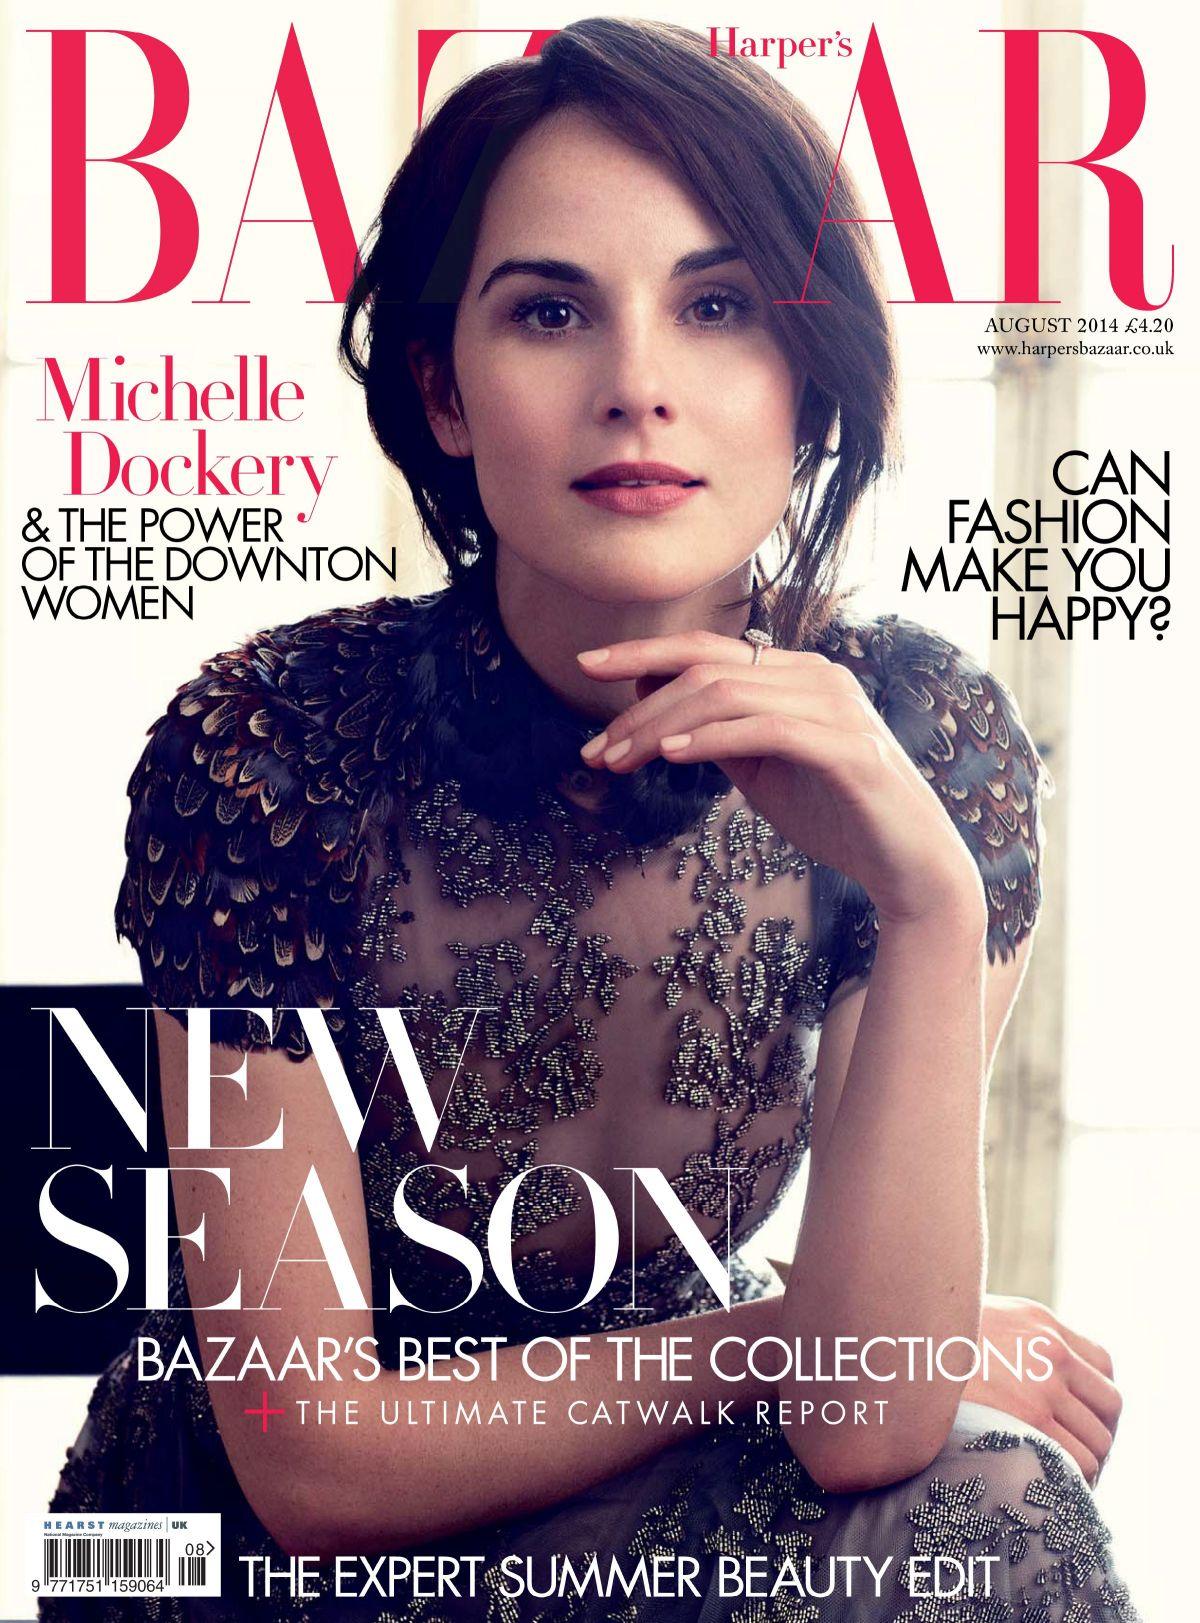 MICHELLE DOCKERY on the Cover of Harper